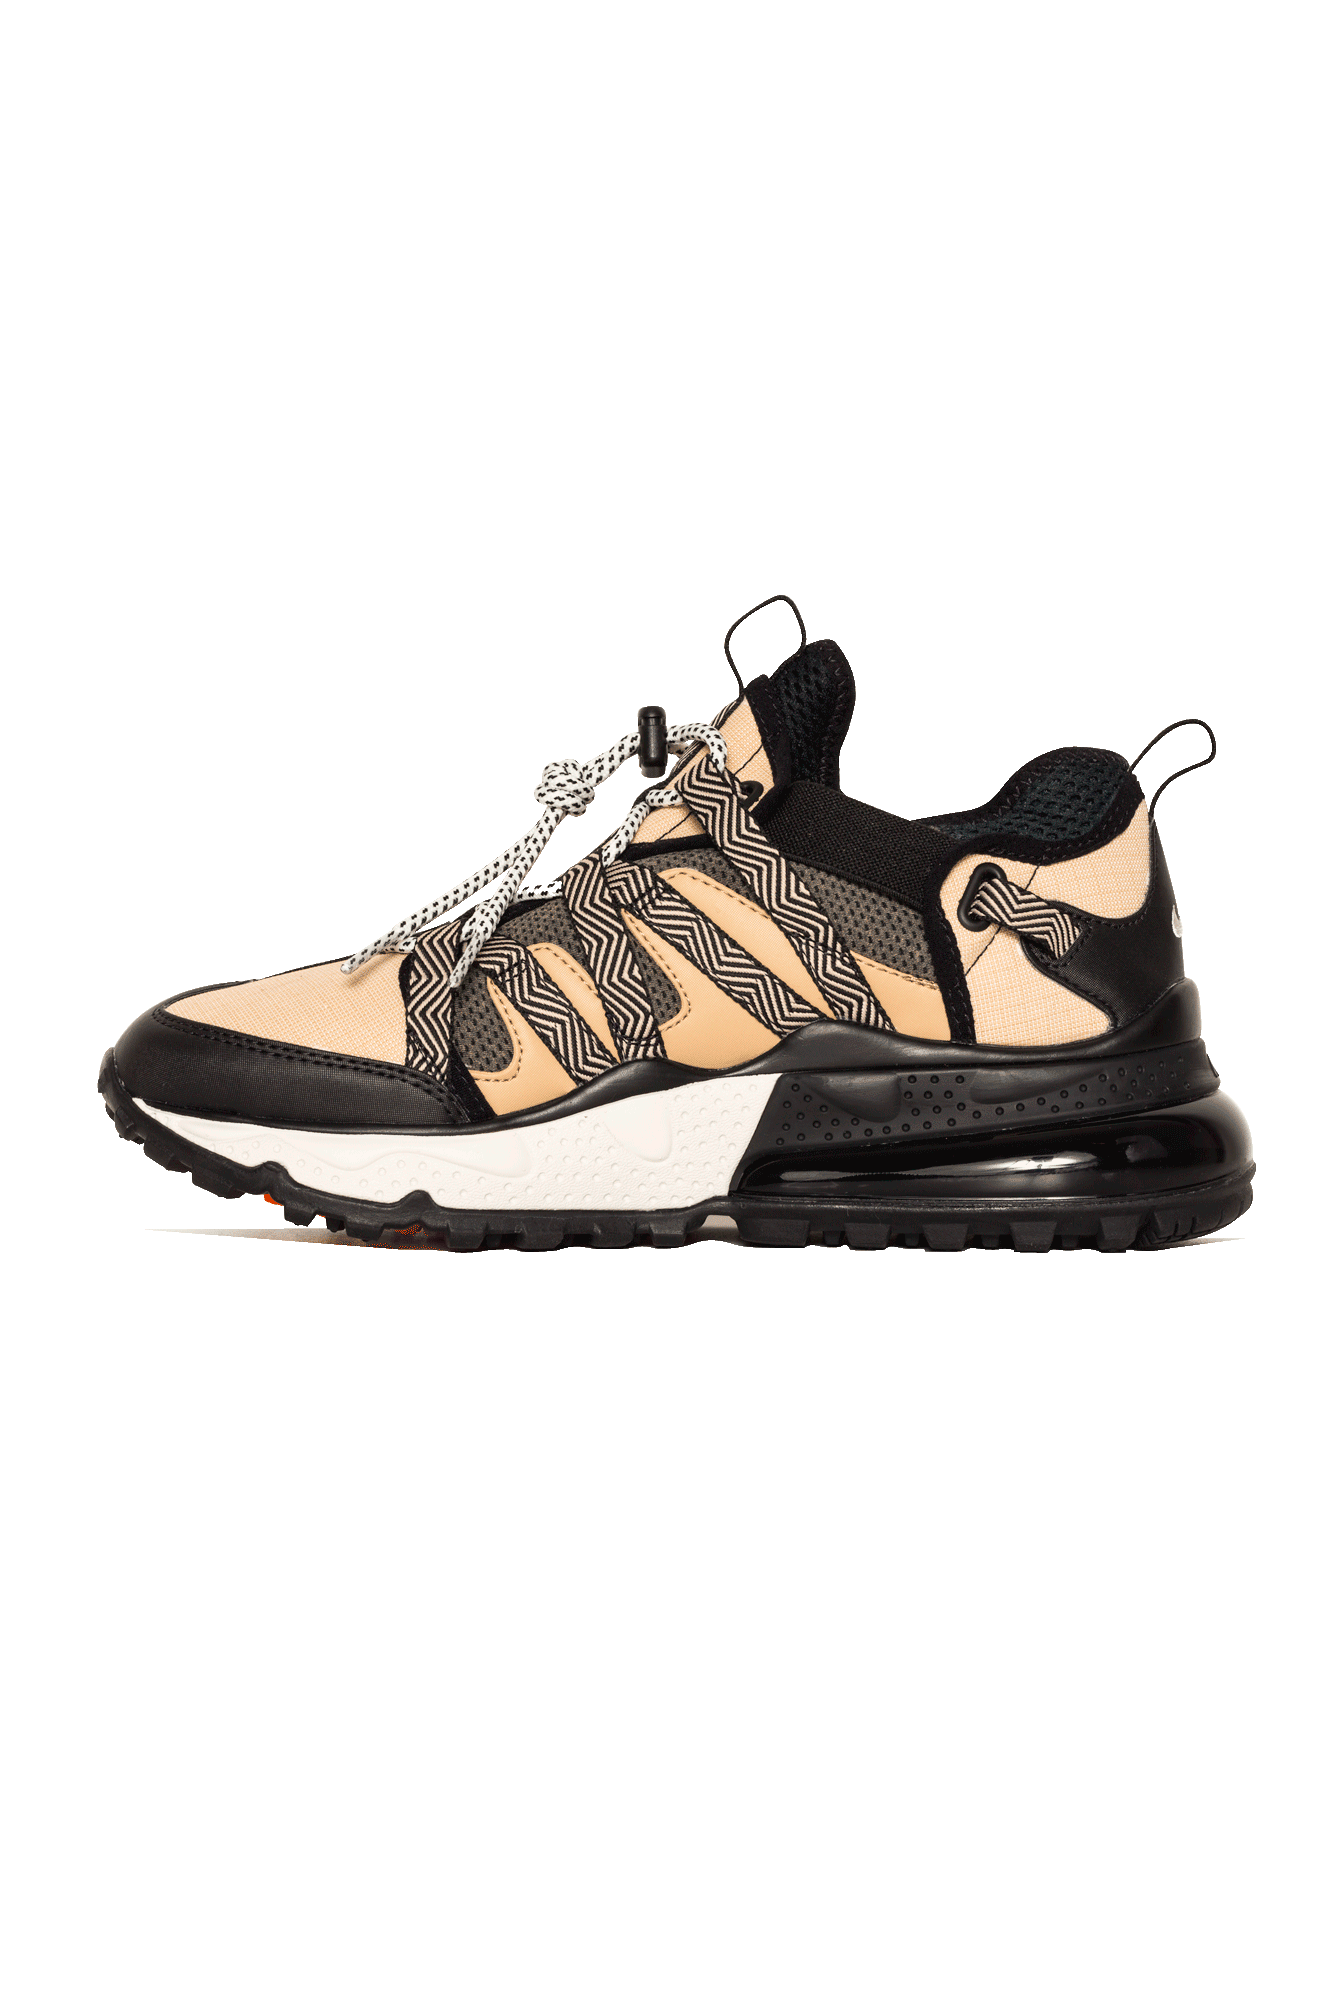 Nike Sneakers Air Max 270 Bowfin Brown AJ7200 #000#001#11